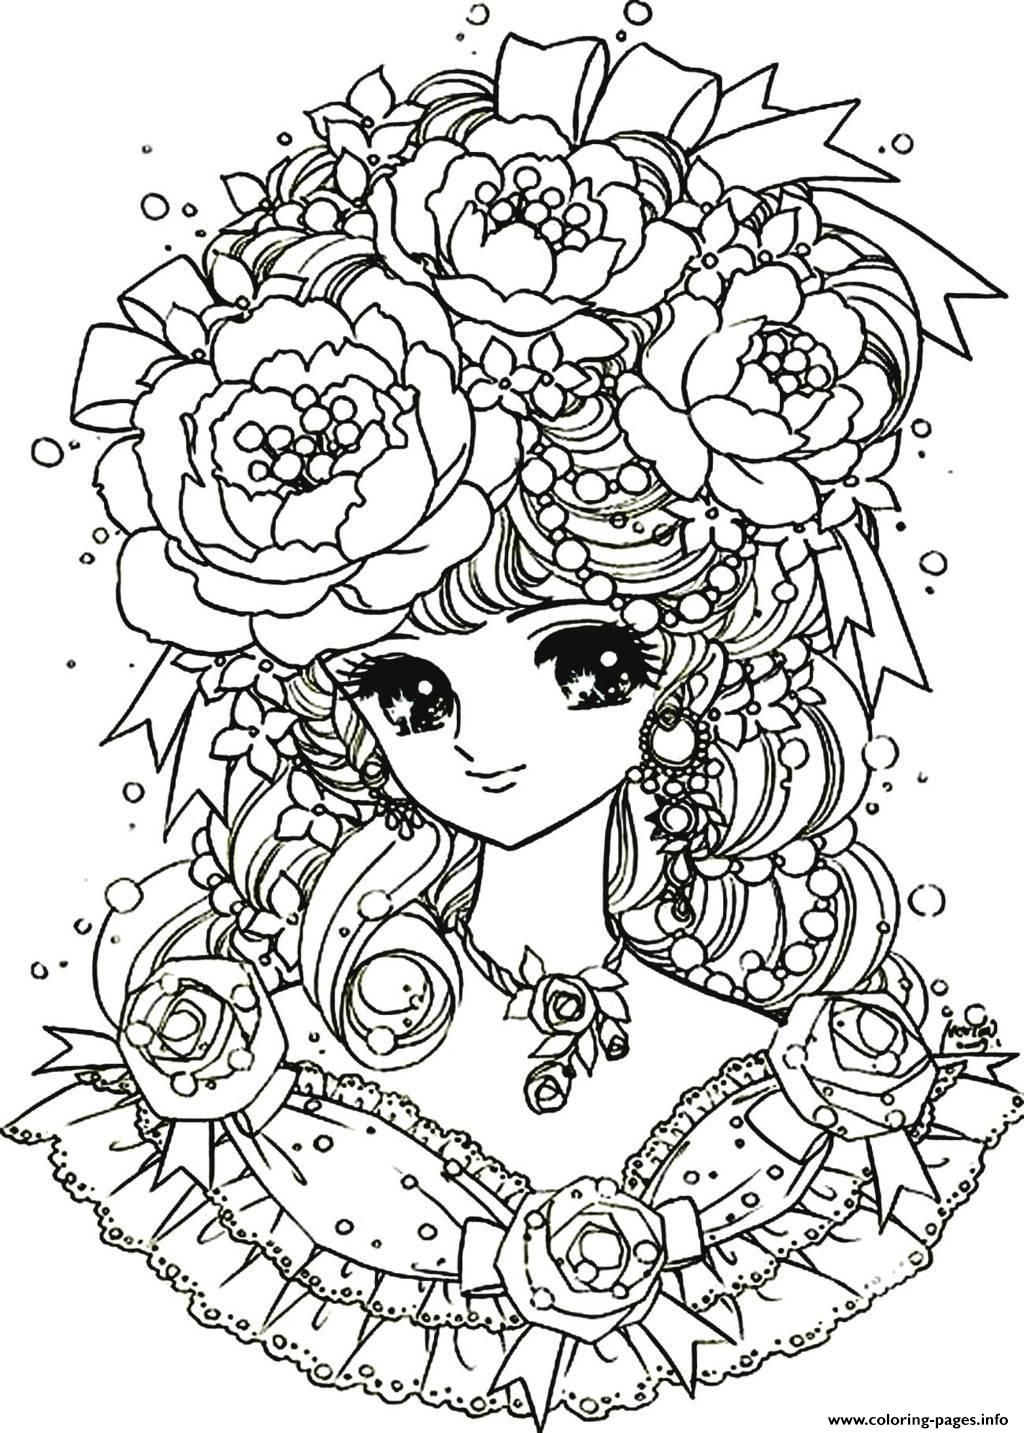 Flower coloring in pages - Print Adult Back To Childhood Manga Girl Flowers Coloring Pages